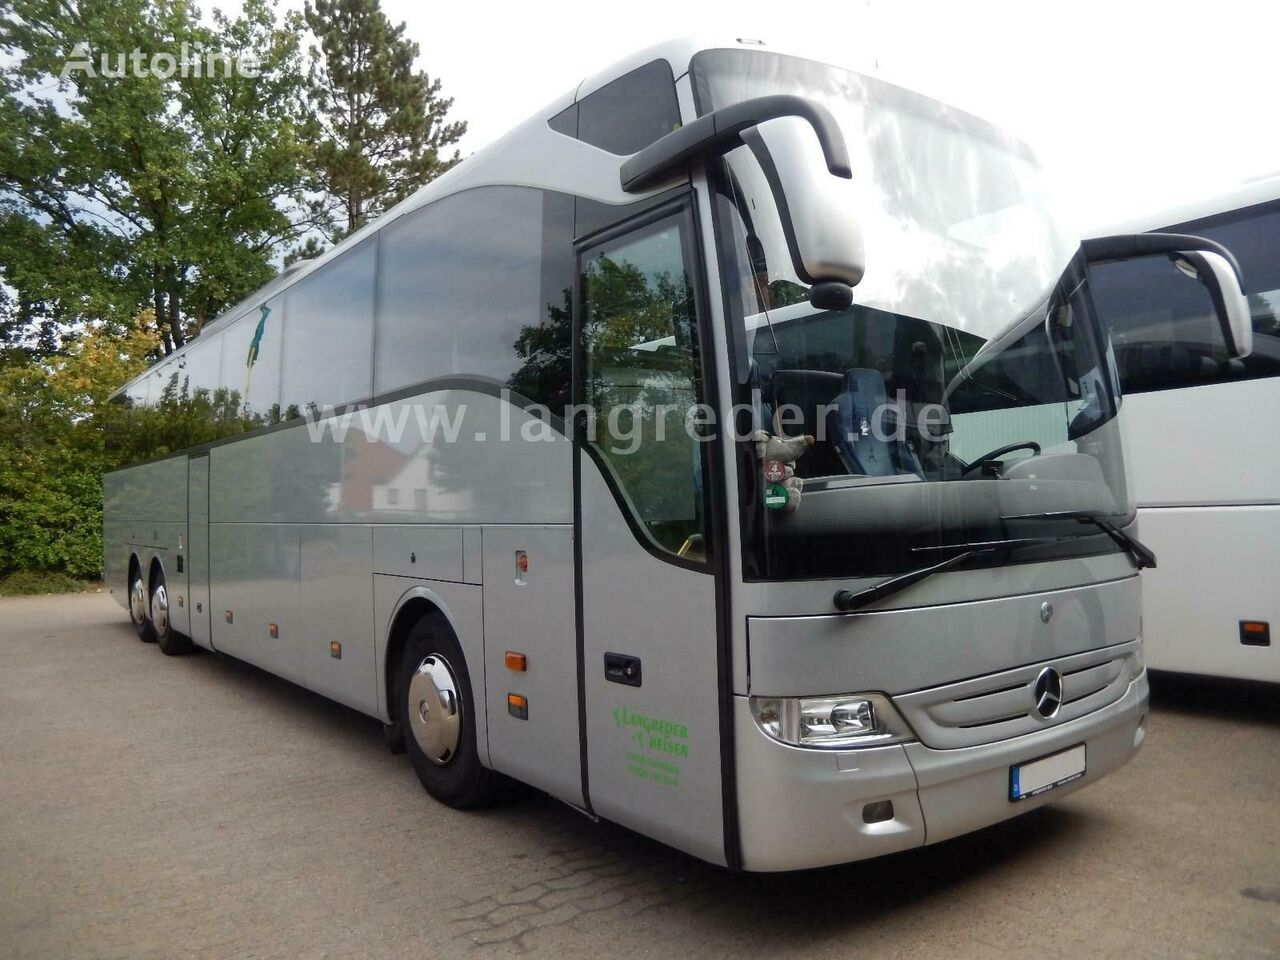 MERCEDES-BENZ Tourismo RHD-L coach bus